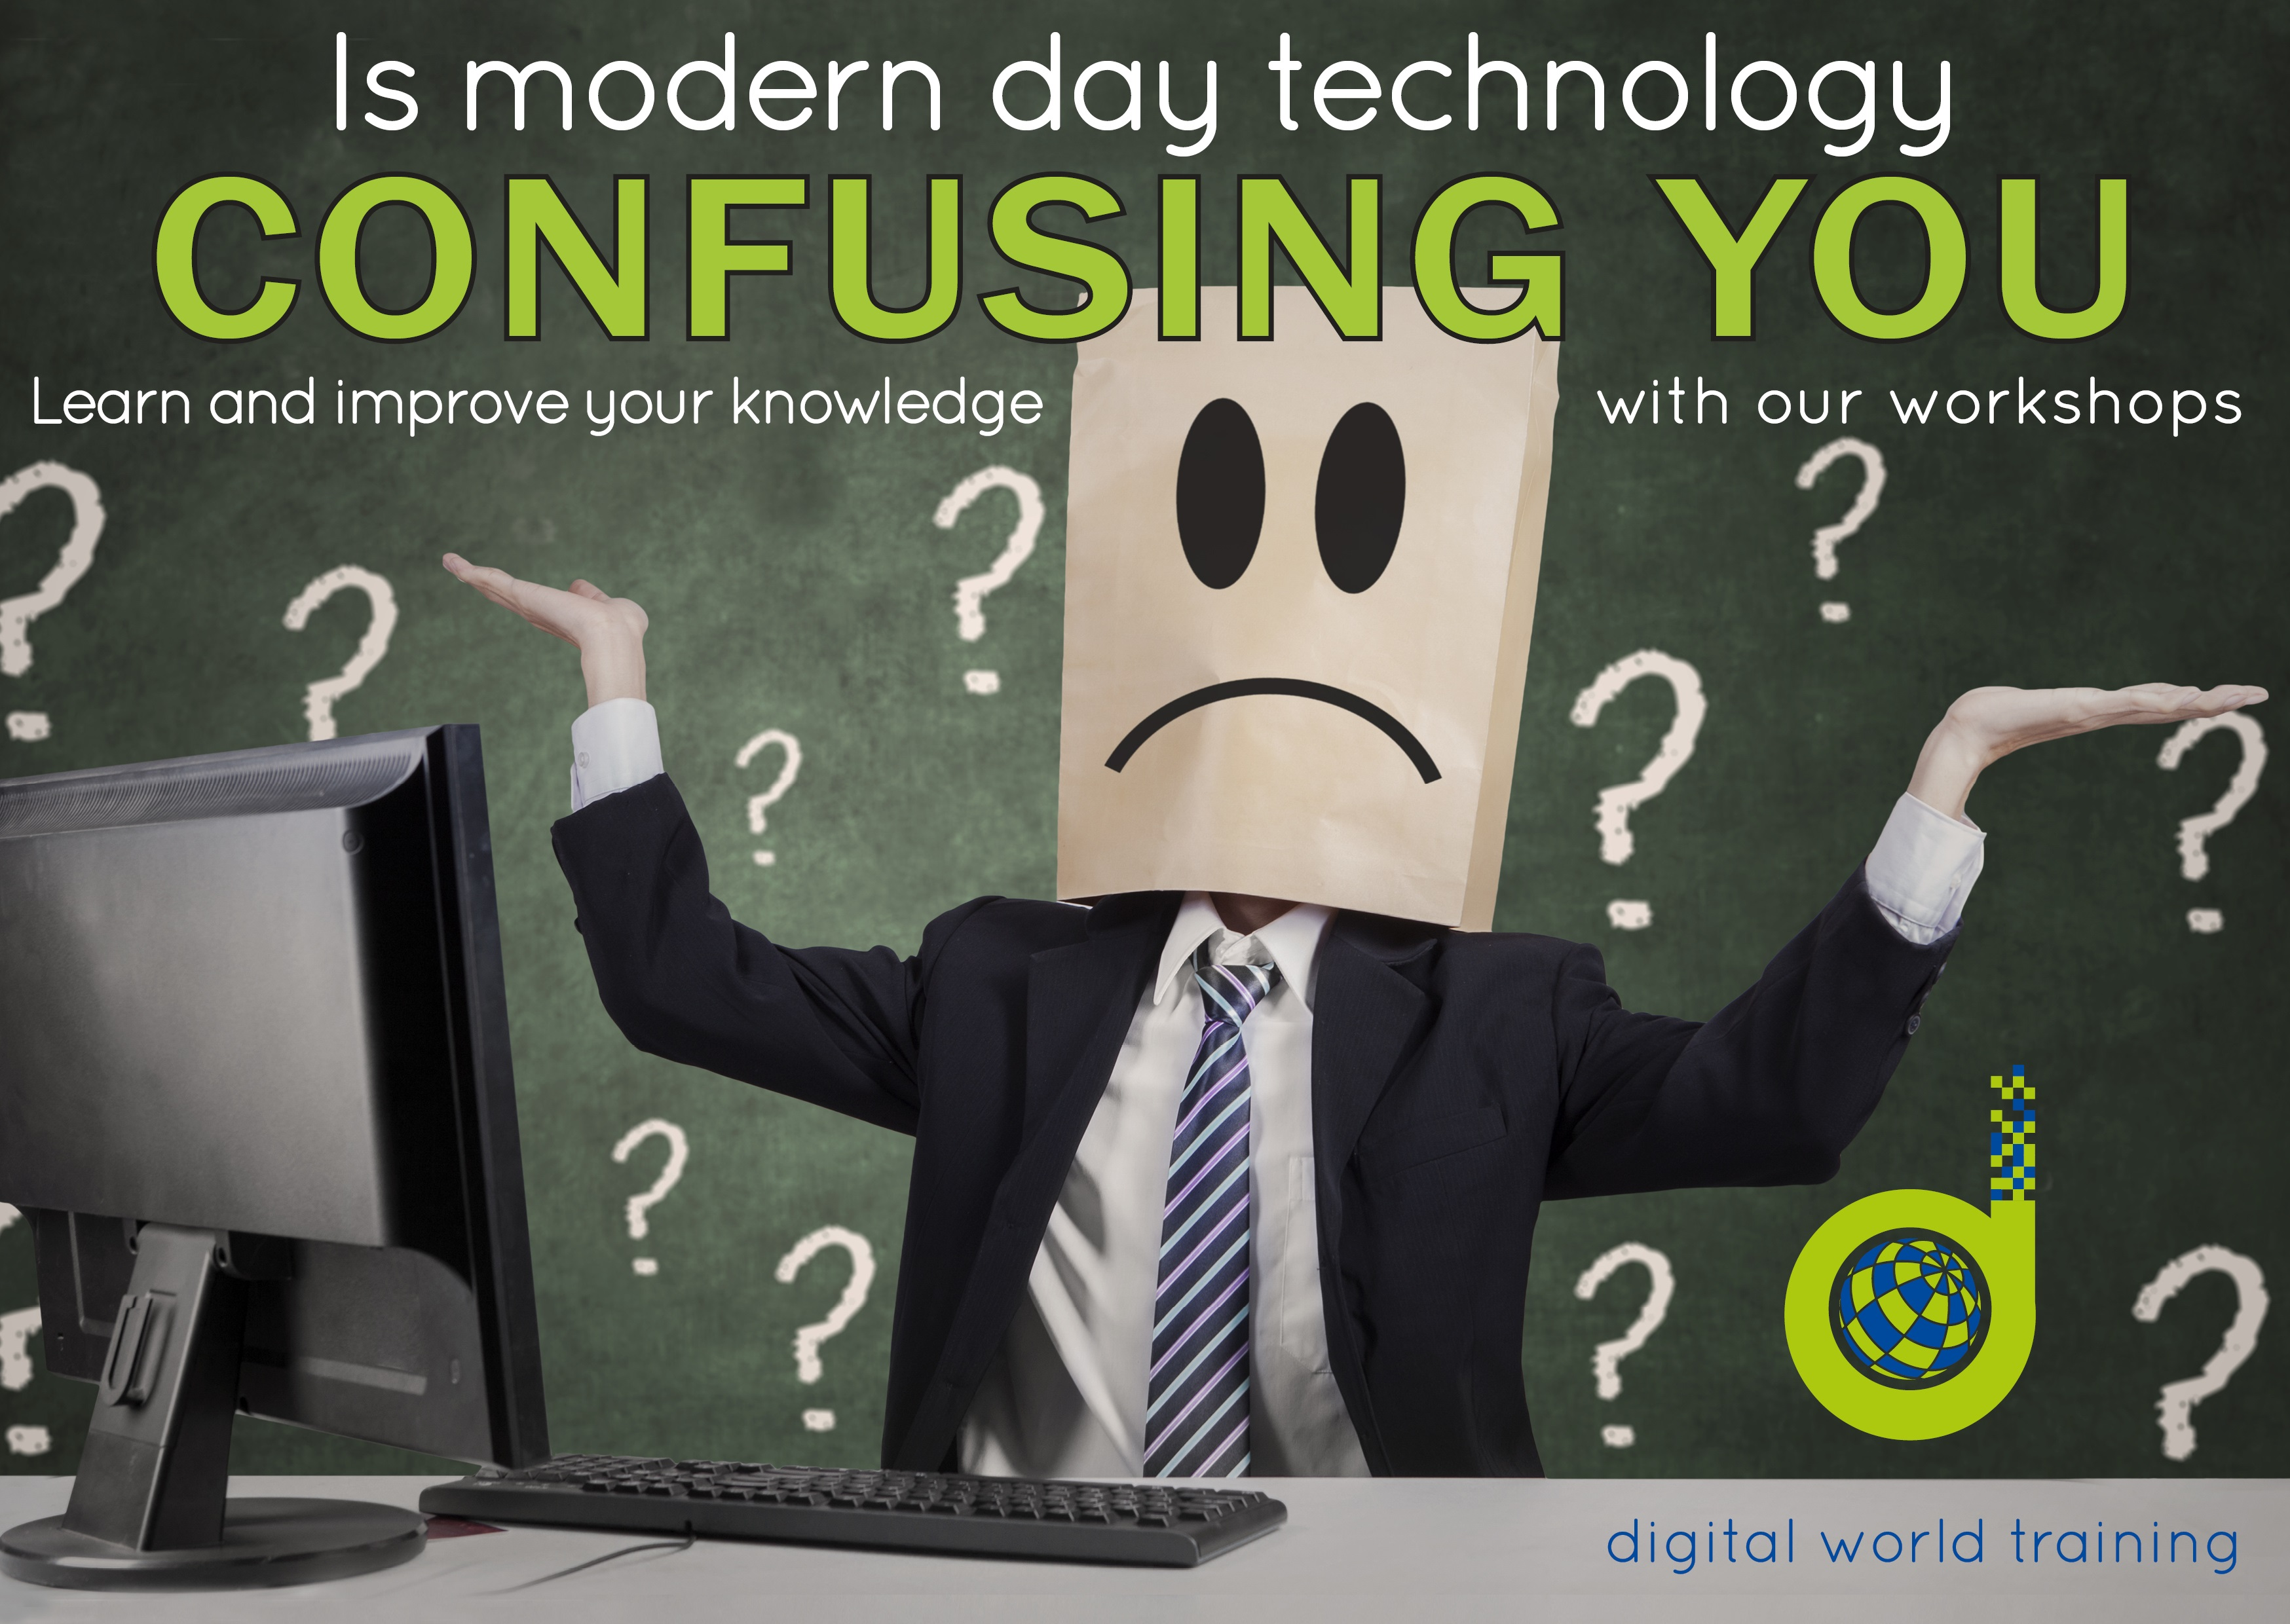 Digital World Training - Frankston, VIC 3198 - 0449 682 902 | ShowMeLocal.com